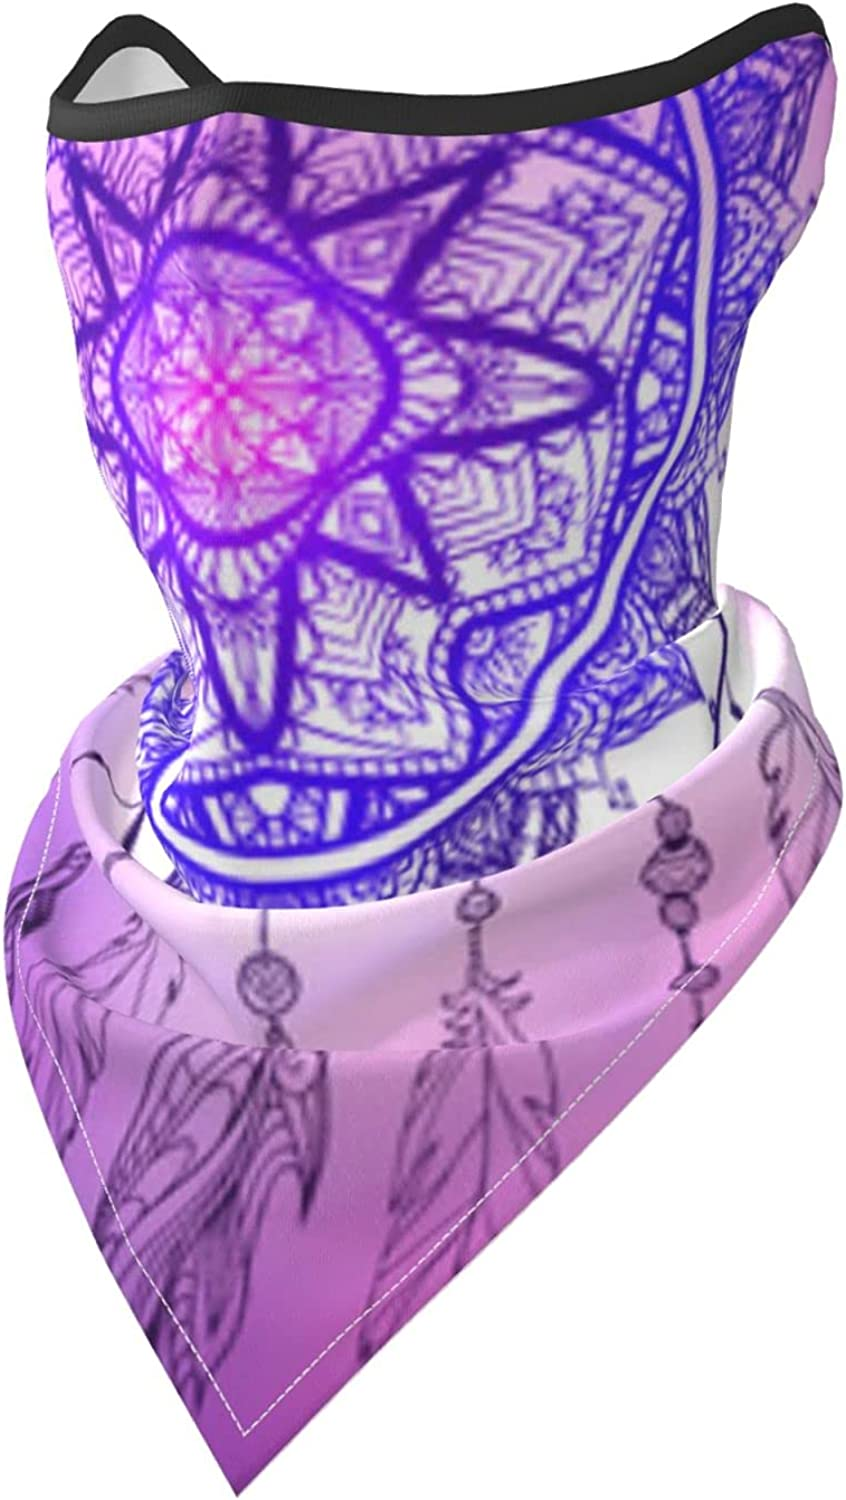 Dreamcatcher Boho Breathable Bandana Face Mask Neck Gaiter Windproof Sports Mask Scarf Headwear for Men Women Outdoor Hiking Cycling Running Motorcycling